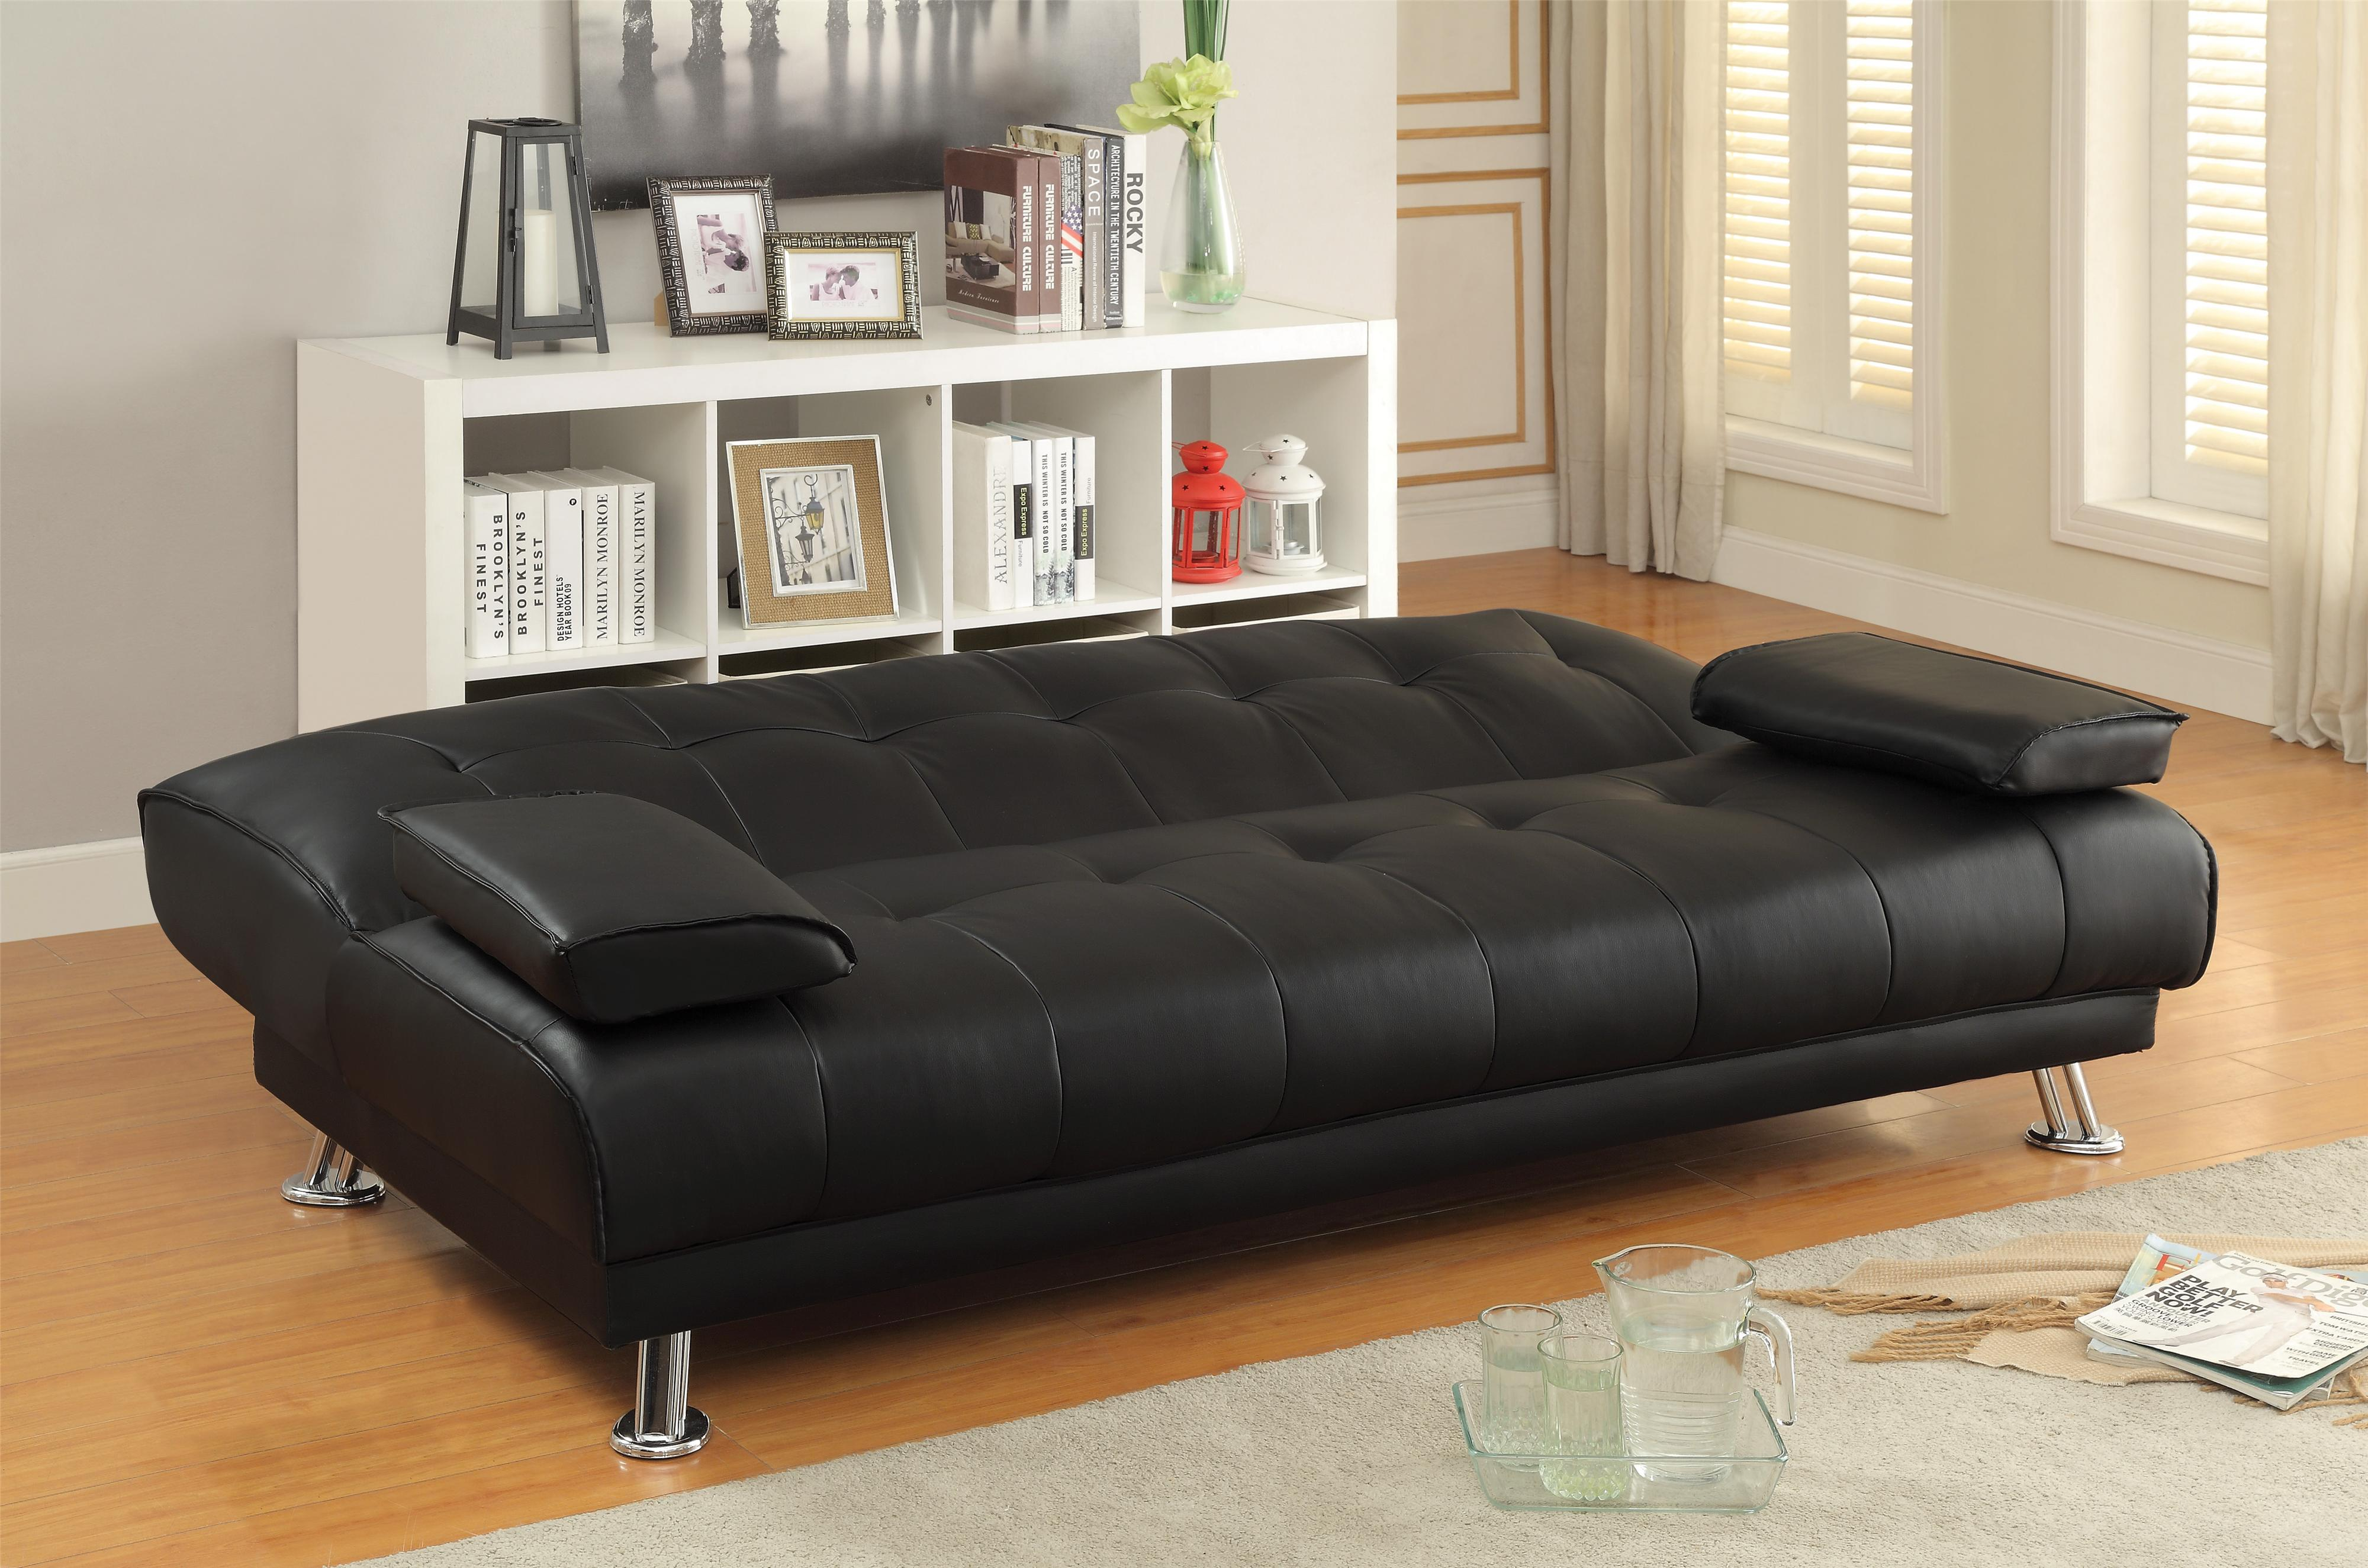 stylish convertible futon sofa bed picture-Luxury Convertible Futon sofa Bed Picture